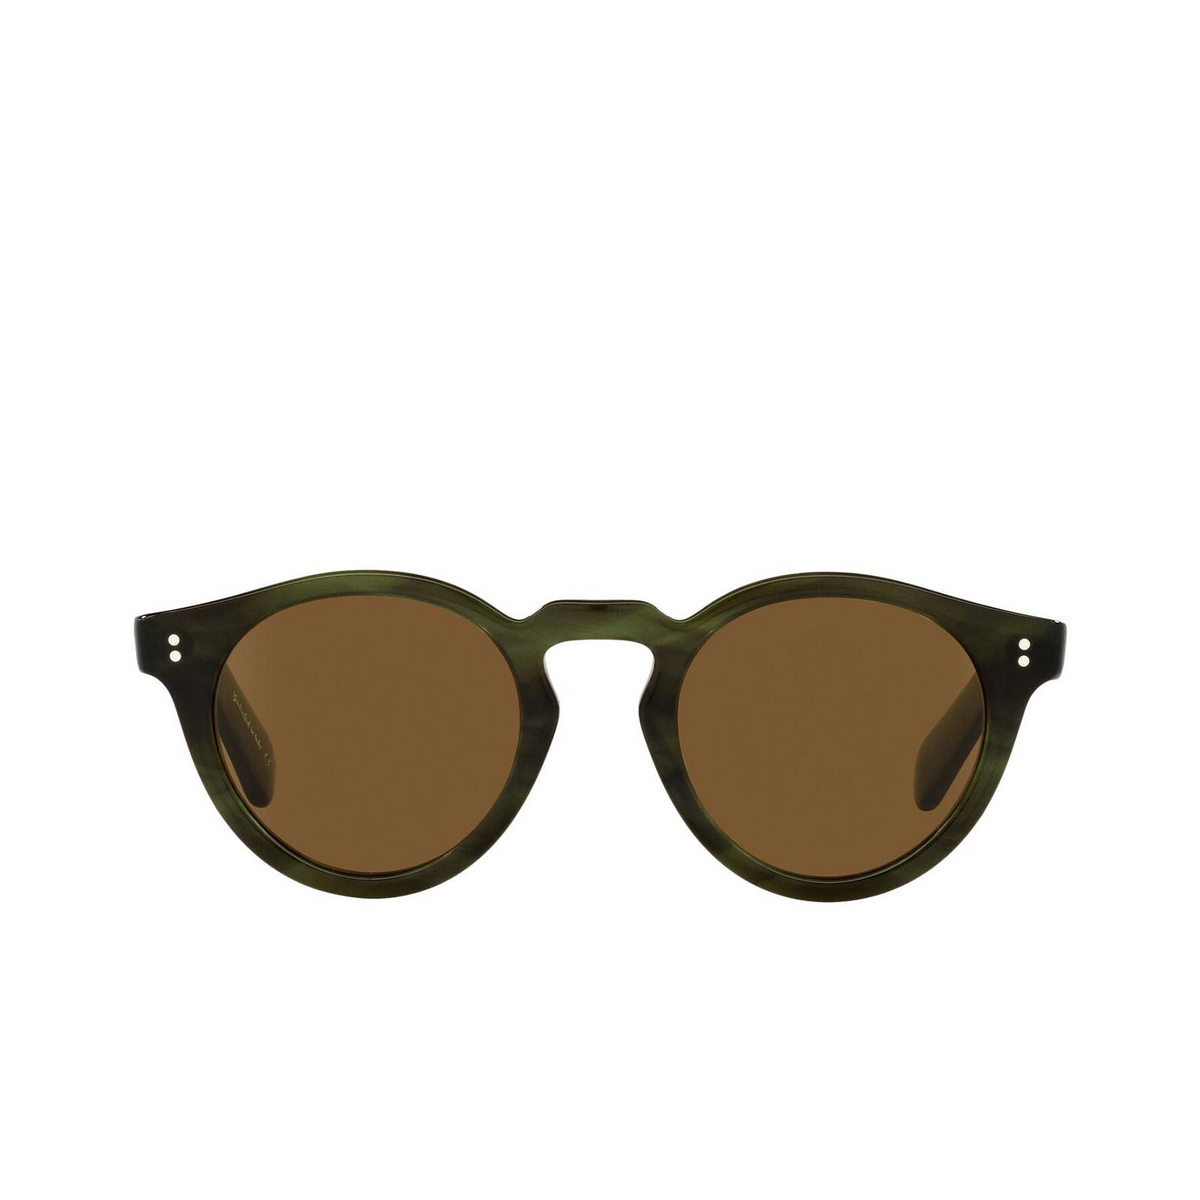 Oliver Peoples® Round Sunglasses: Martineaux OV5450SU color Emerald Bark 168053 - front view.